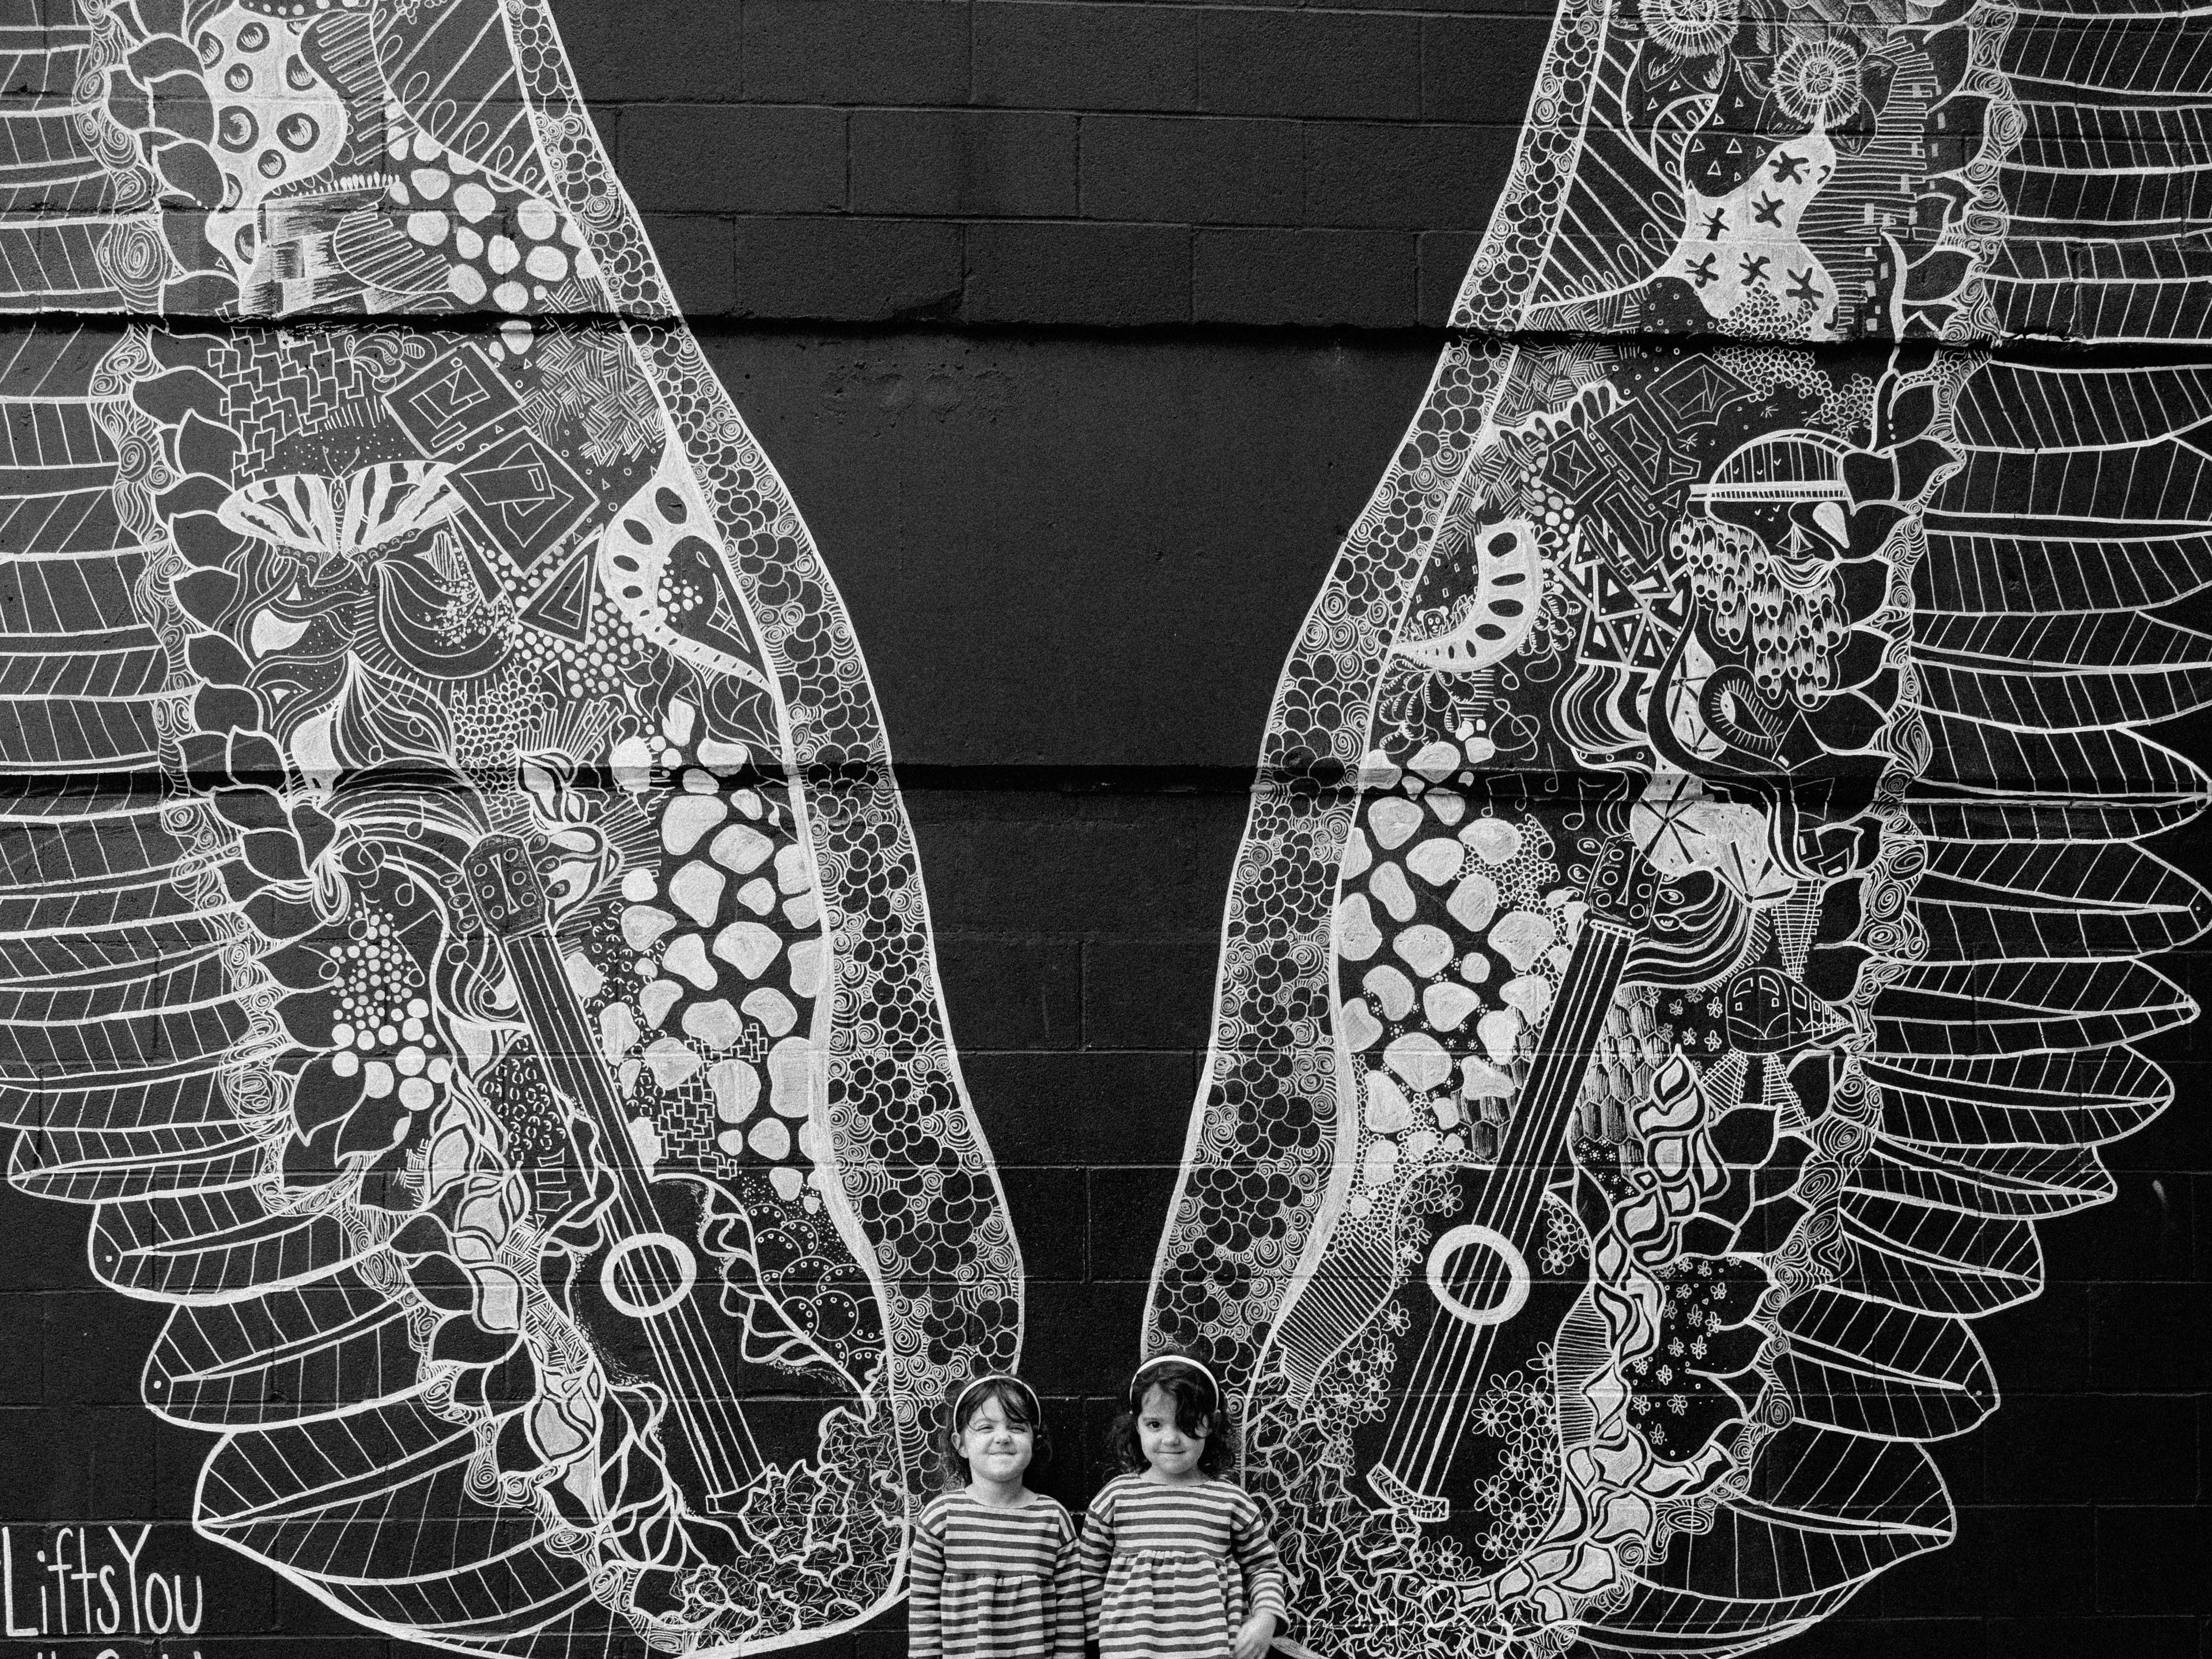 Kelsey Montague painted these twenty-foot-tall wings on the side of a building in the Gulch. ... It's called What Lifts You, and it does.